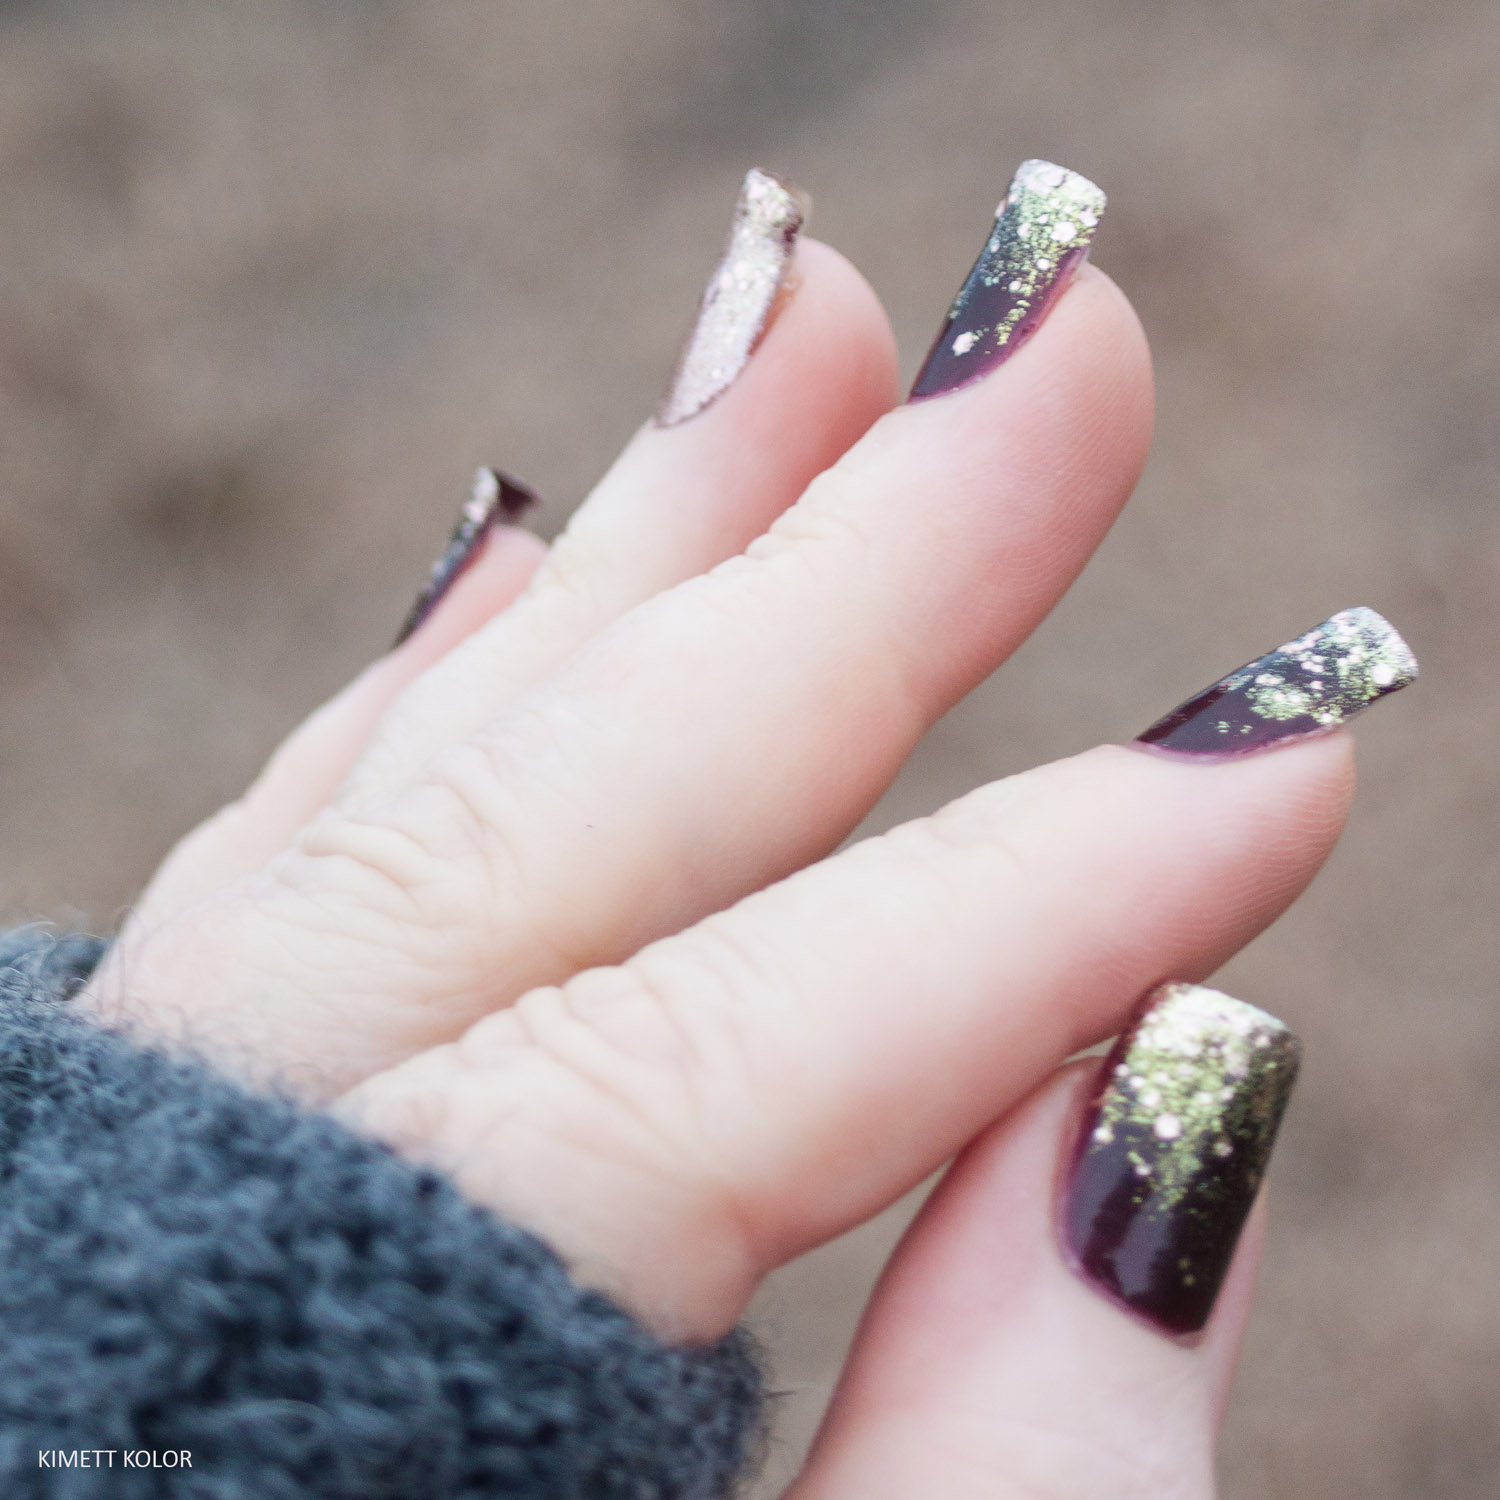 KimettKolor Glitter Gradient Nails for New Year's Eve